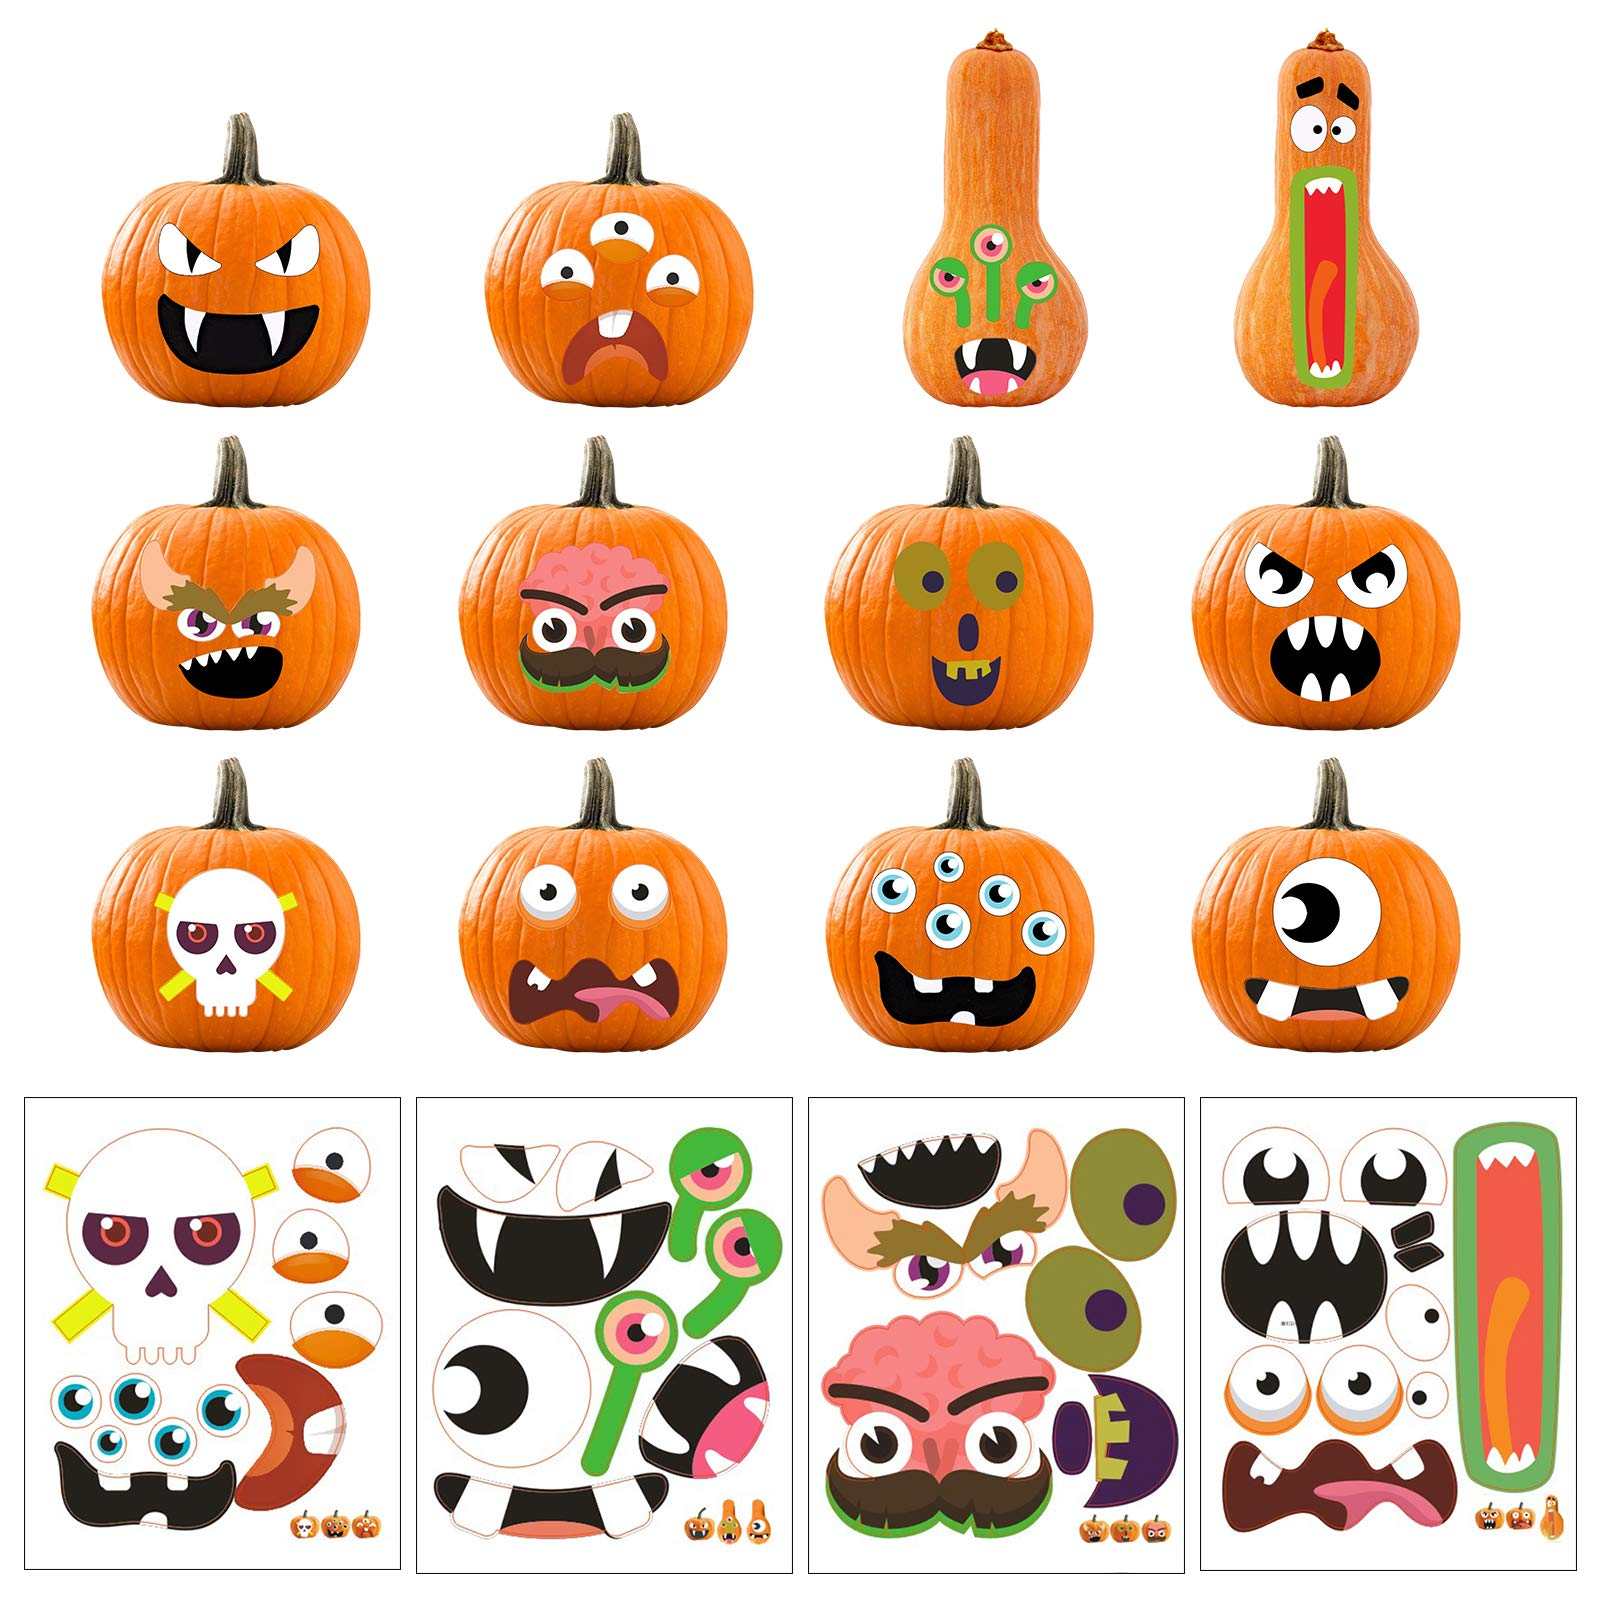 TAZEMAT Halloween Pumpkin Sticker Face Expression Stickers DIY Craft Decoration Trick or Treat Party Jack-O-Lantern Decorating Decals Funny Cartoon Scrapbooks Favors Kids Children Gifts 24 Patterns